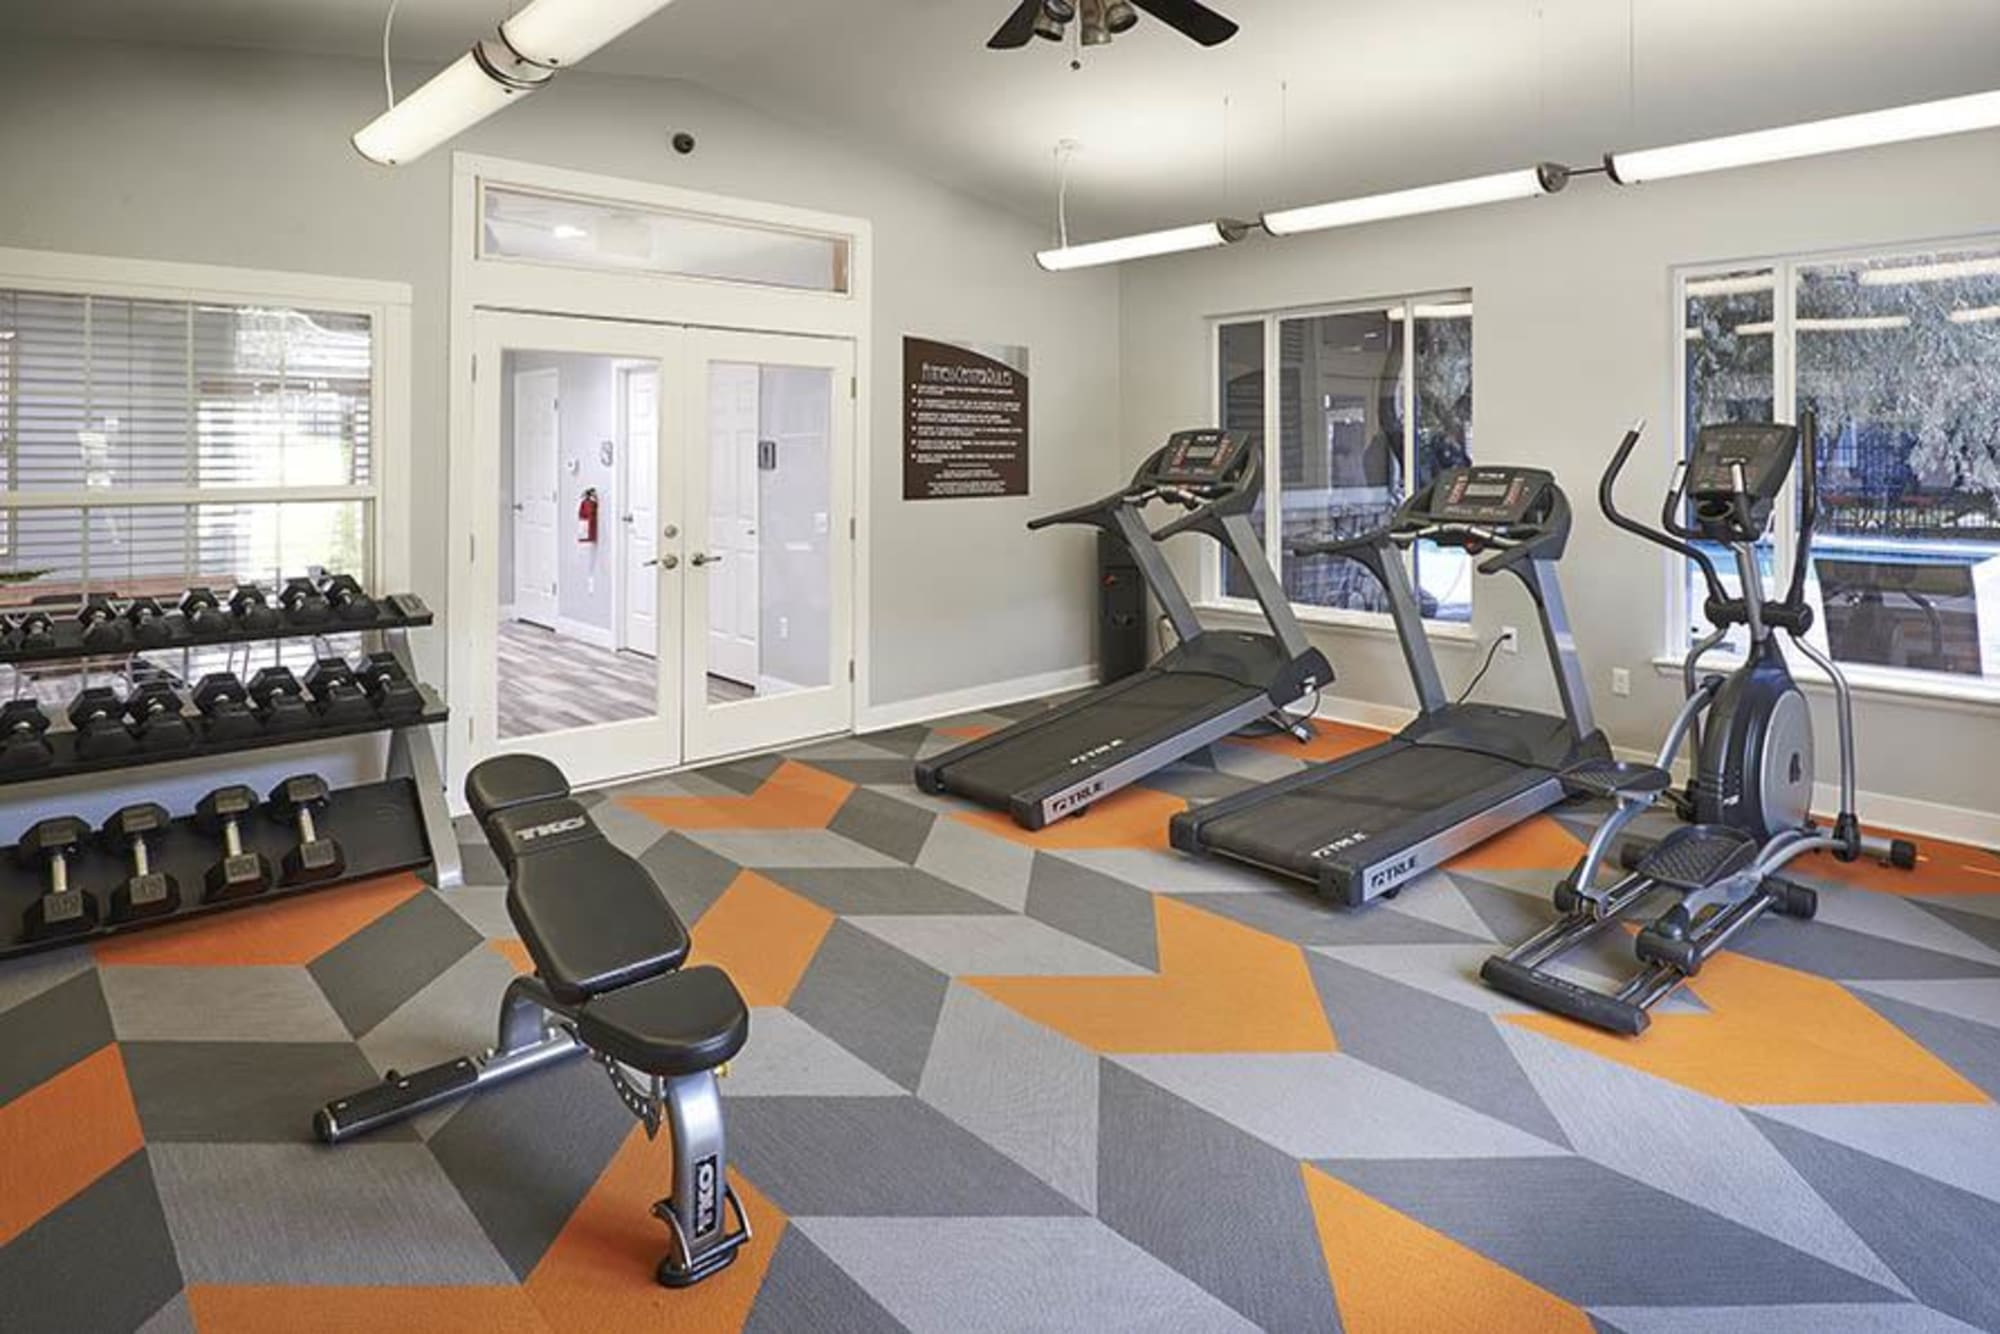 Fitness center with free weights and cardio machines at Crossroads at City Center Apartments in Aurora, Colorado